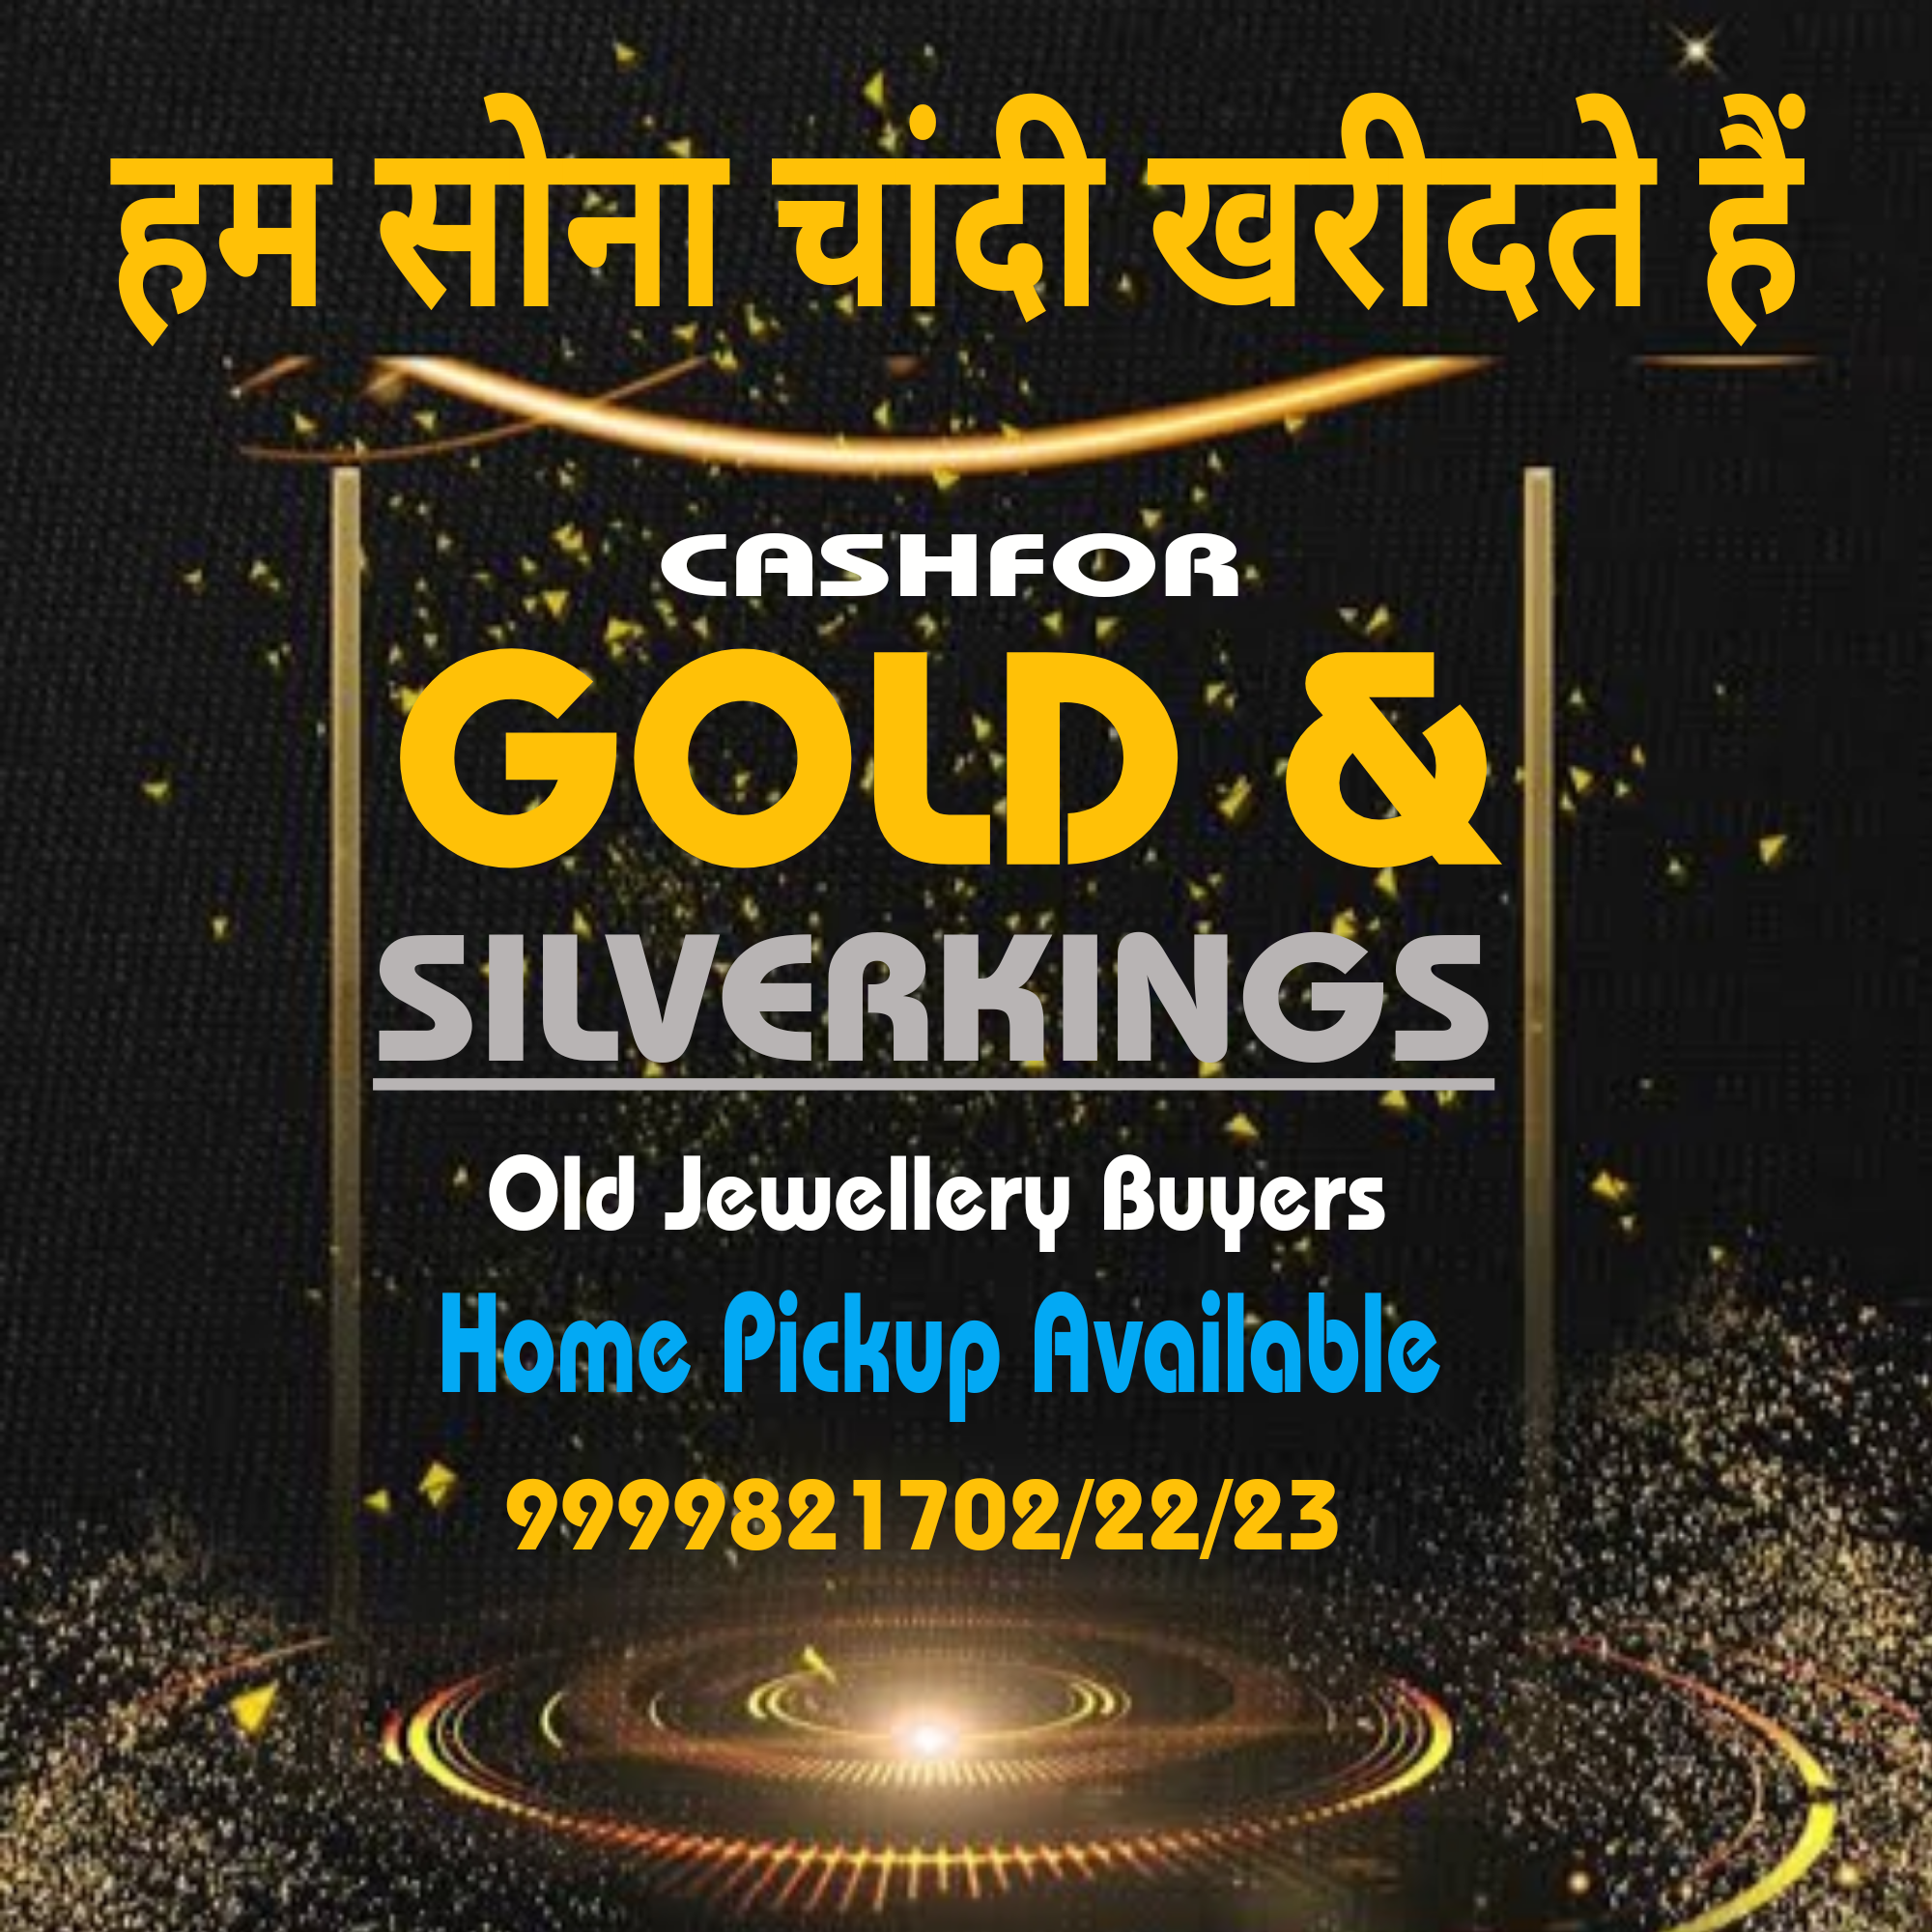 Selling gold coin and jewellery